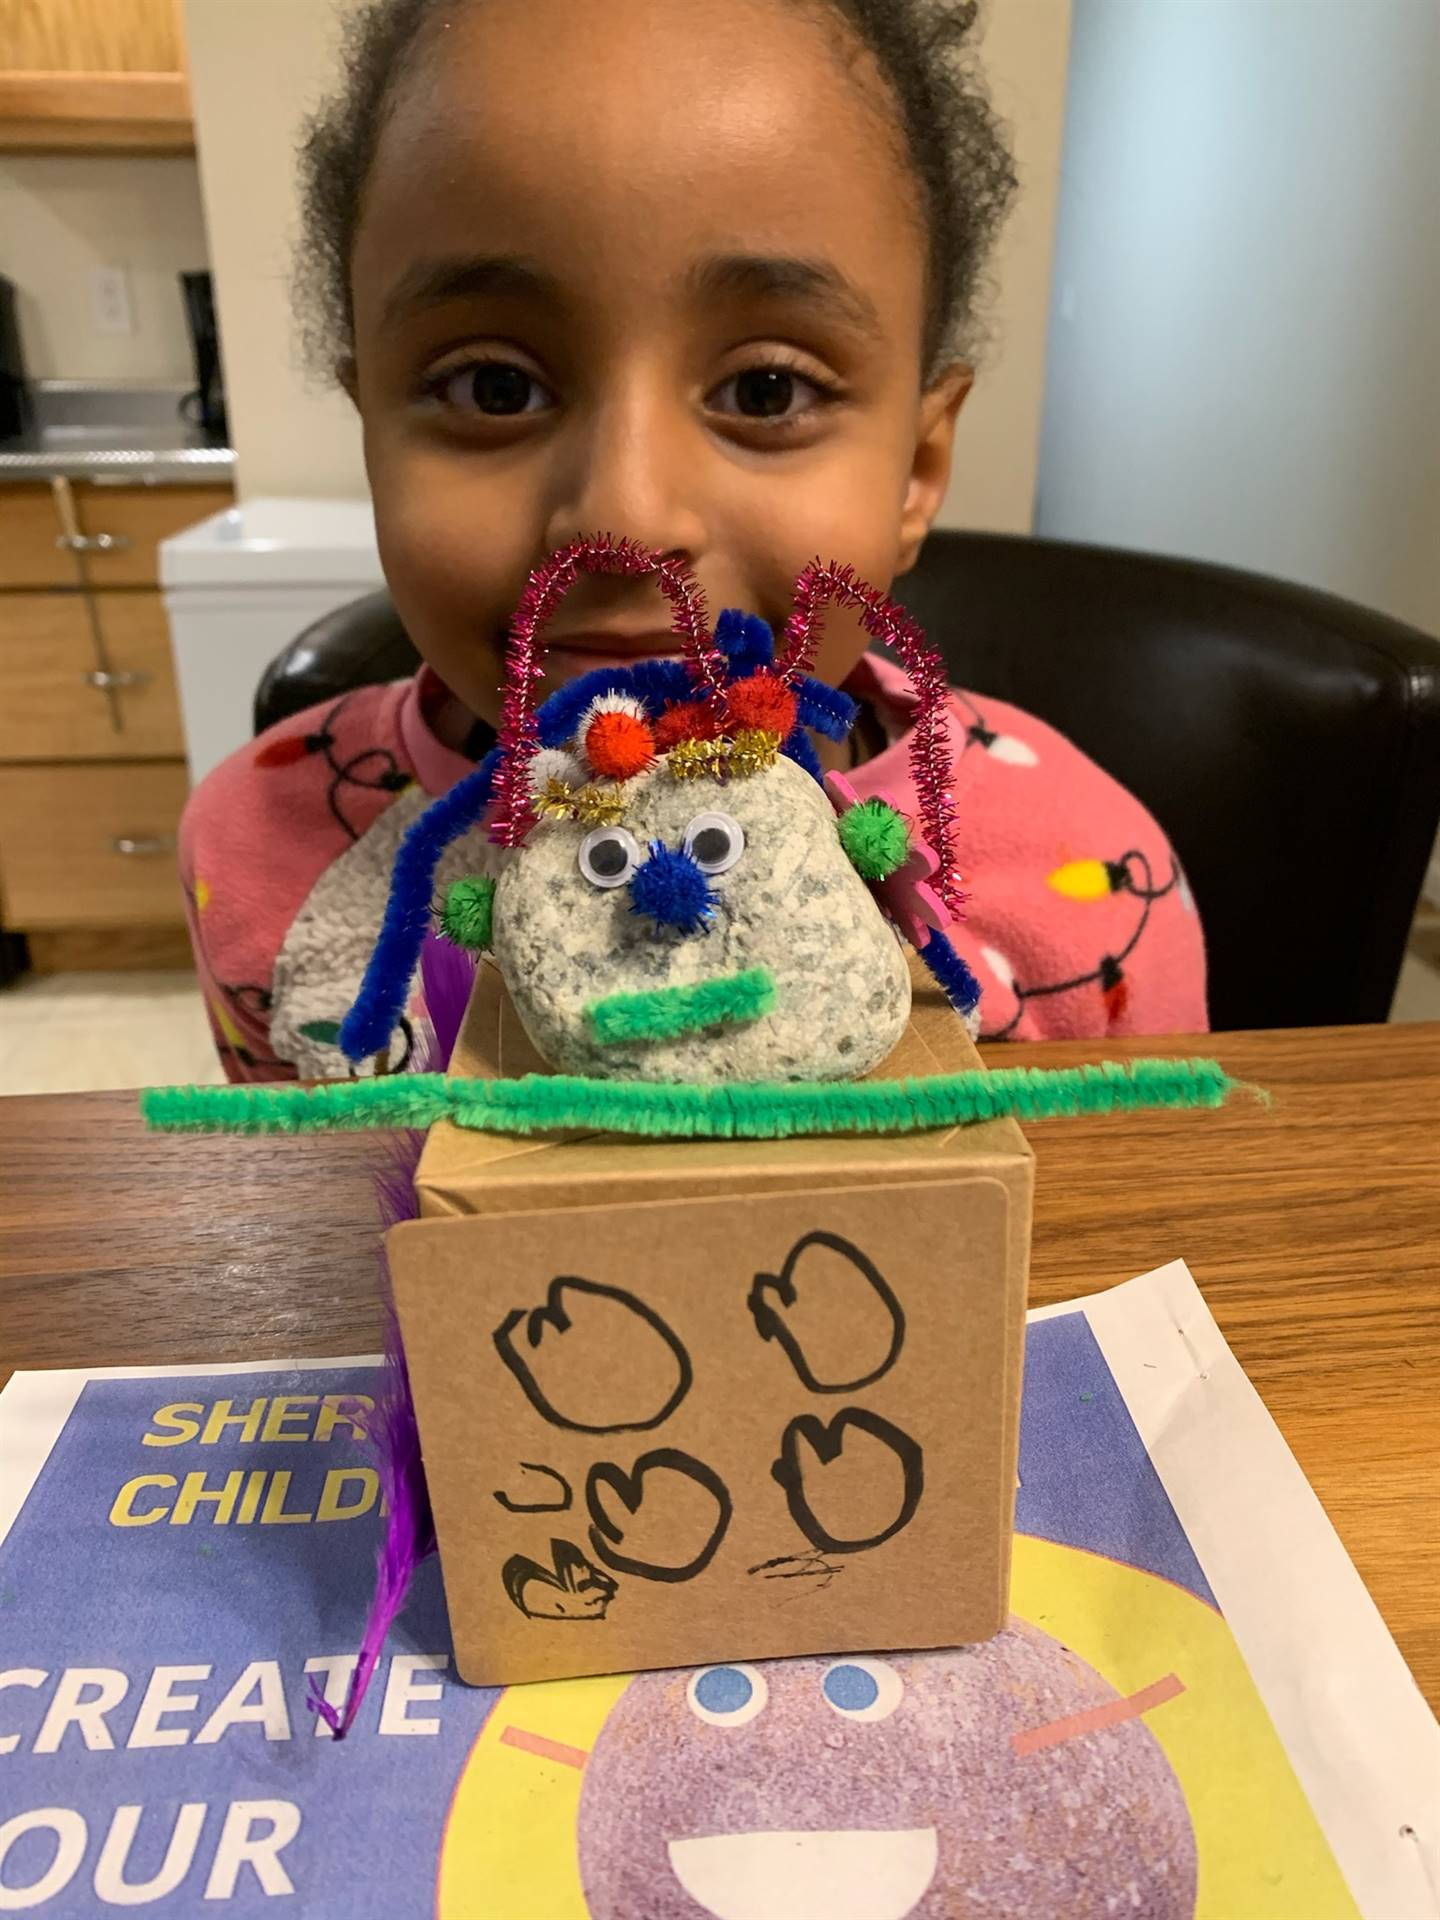 A little girl displays her pet rock completed with it's habitat.